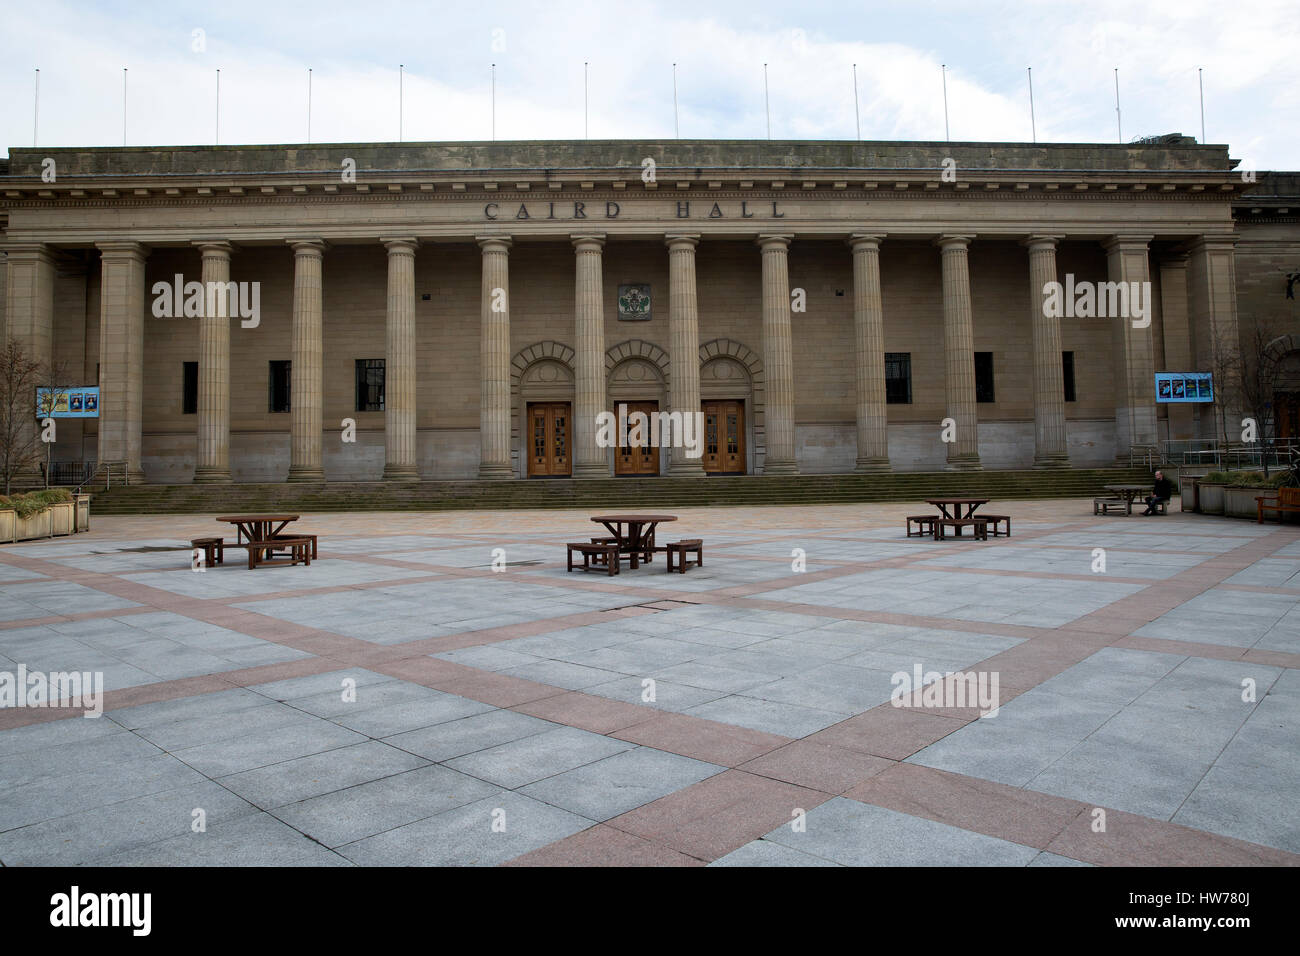 Caird Hall music auditorium in Dundee Scotland - Stock Image